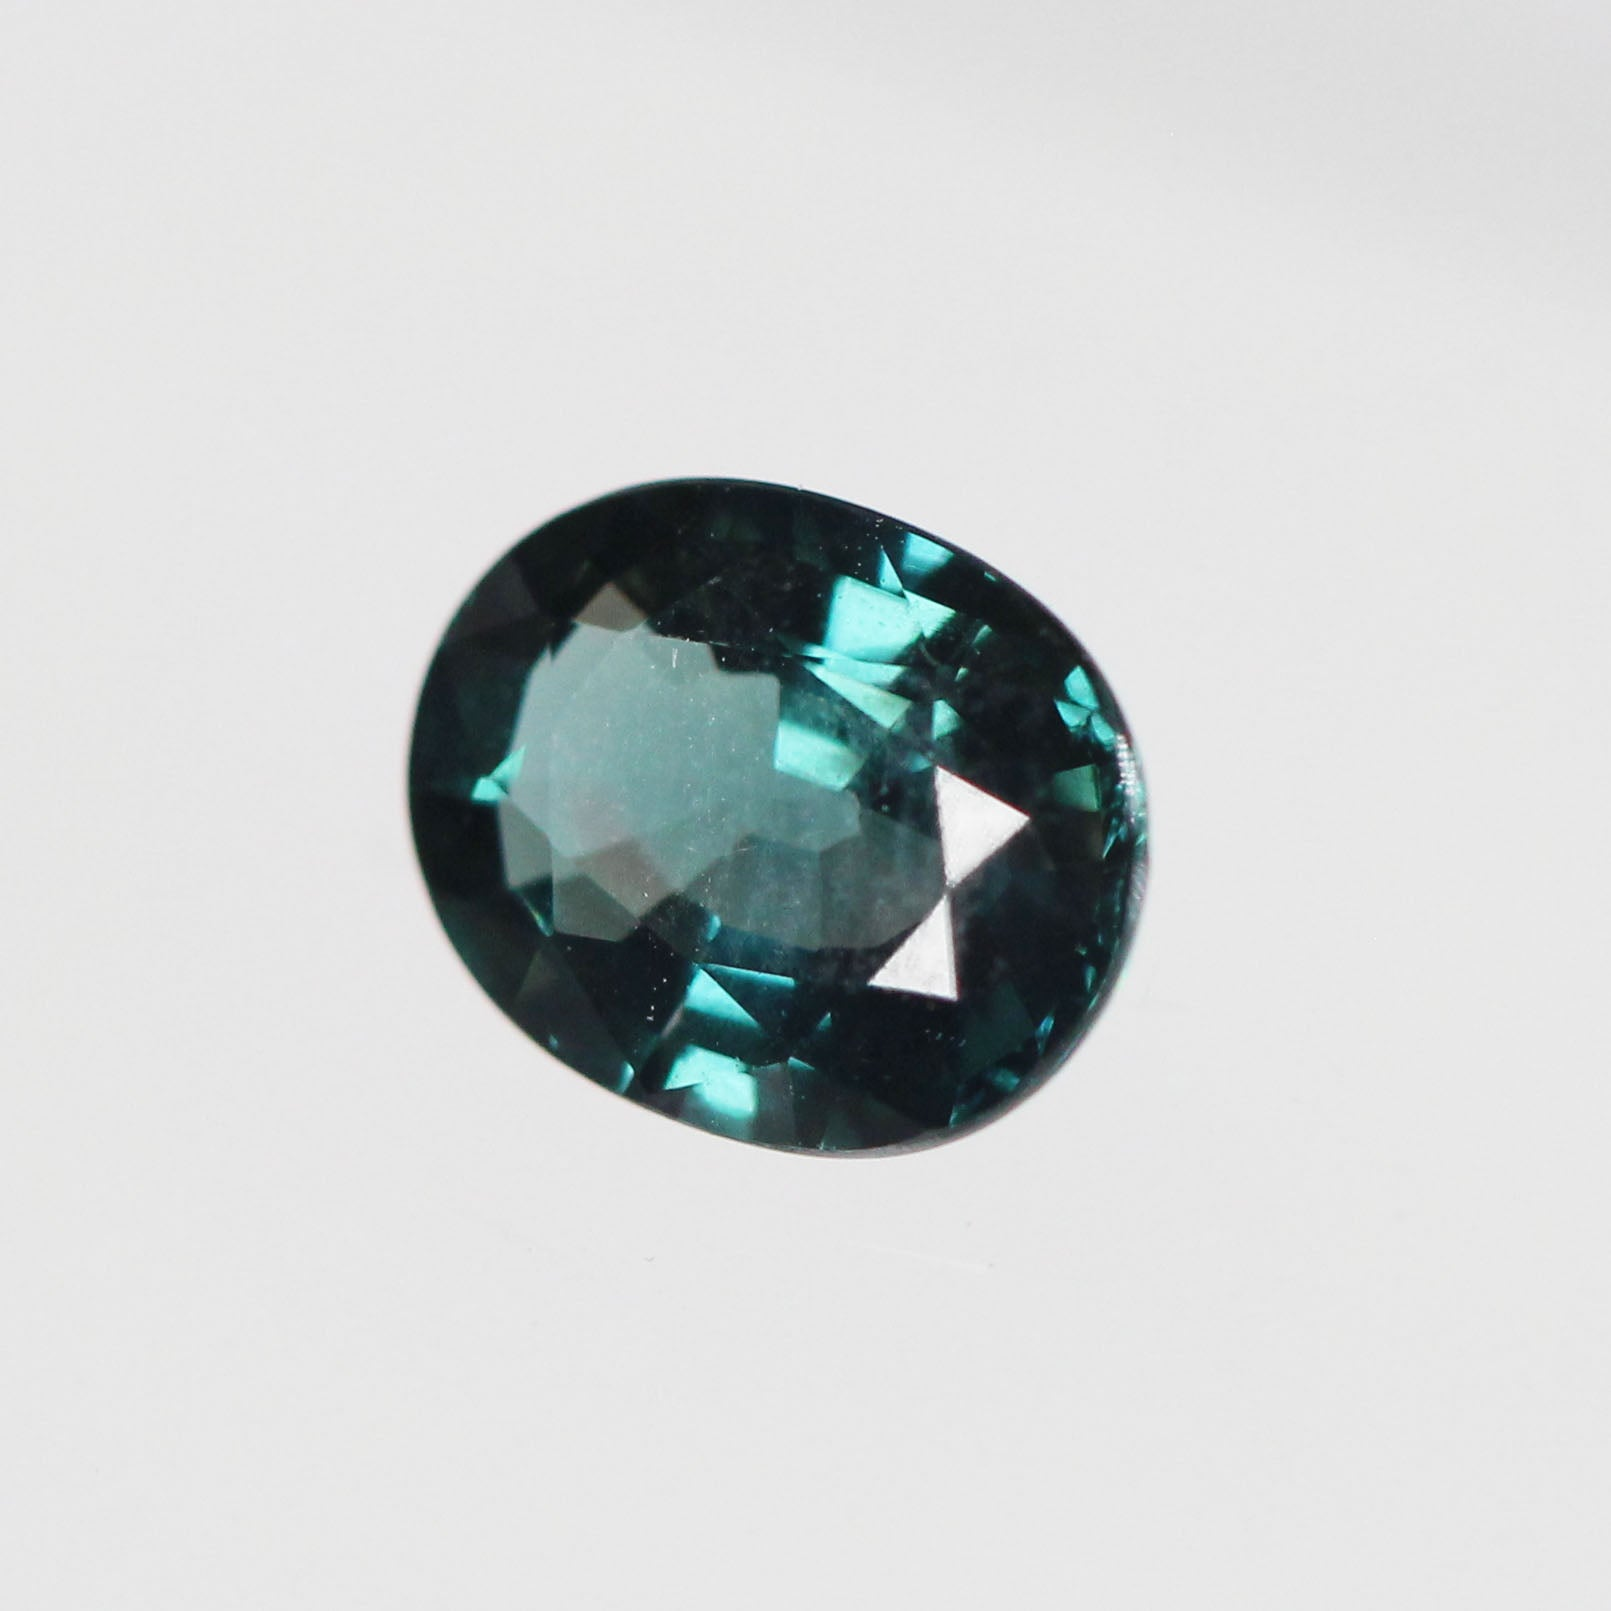 2.36 Carat Oval Sapphire for Custom Work - Inventory Code OBSAP236 - Celestial Diamonds ® by Midwinter Co.